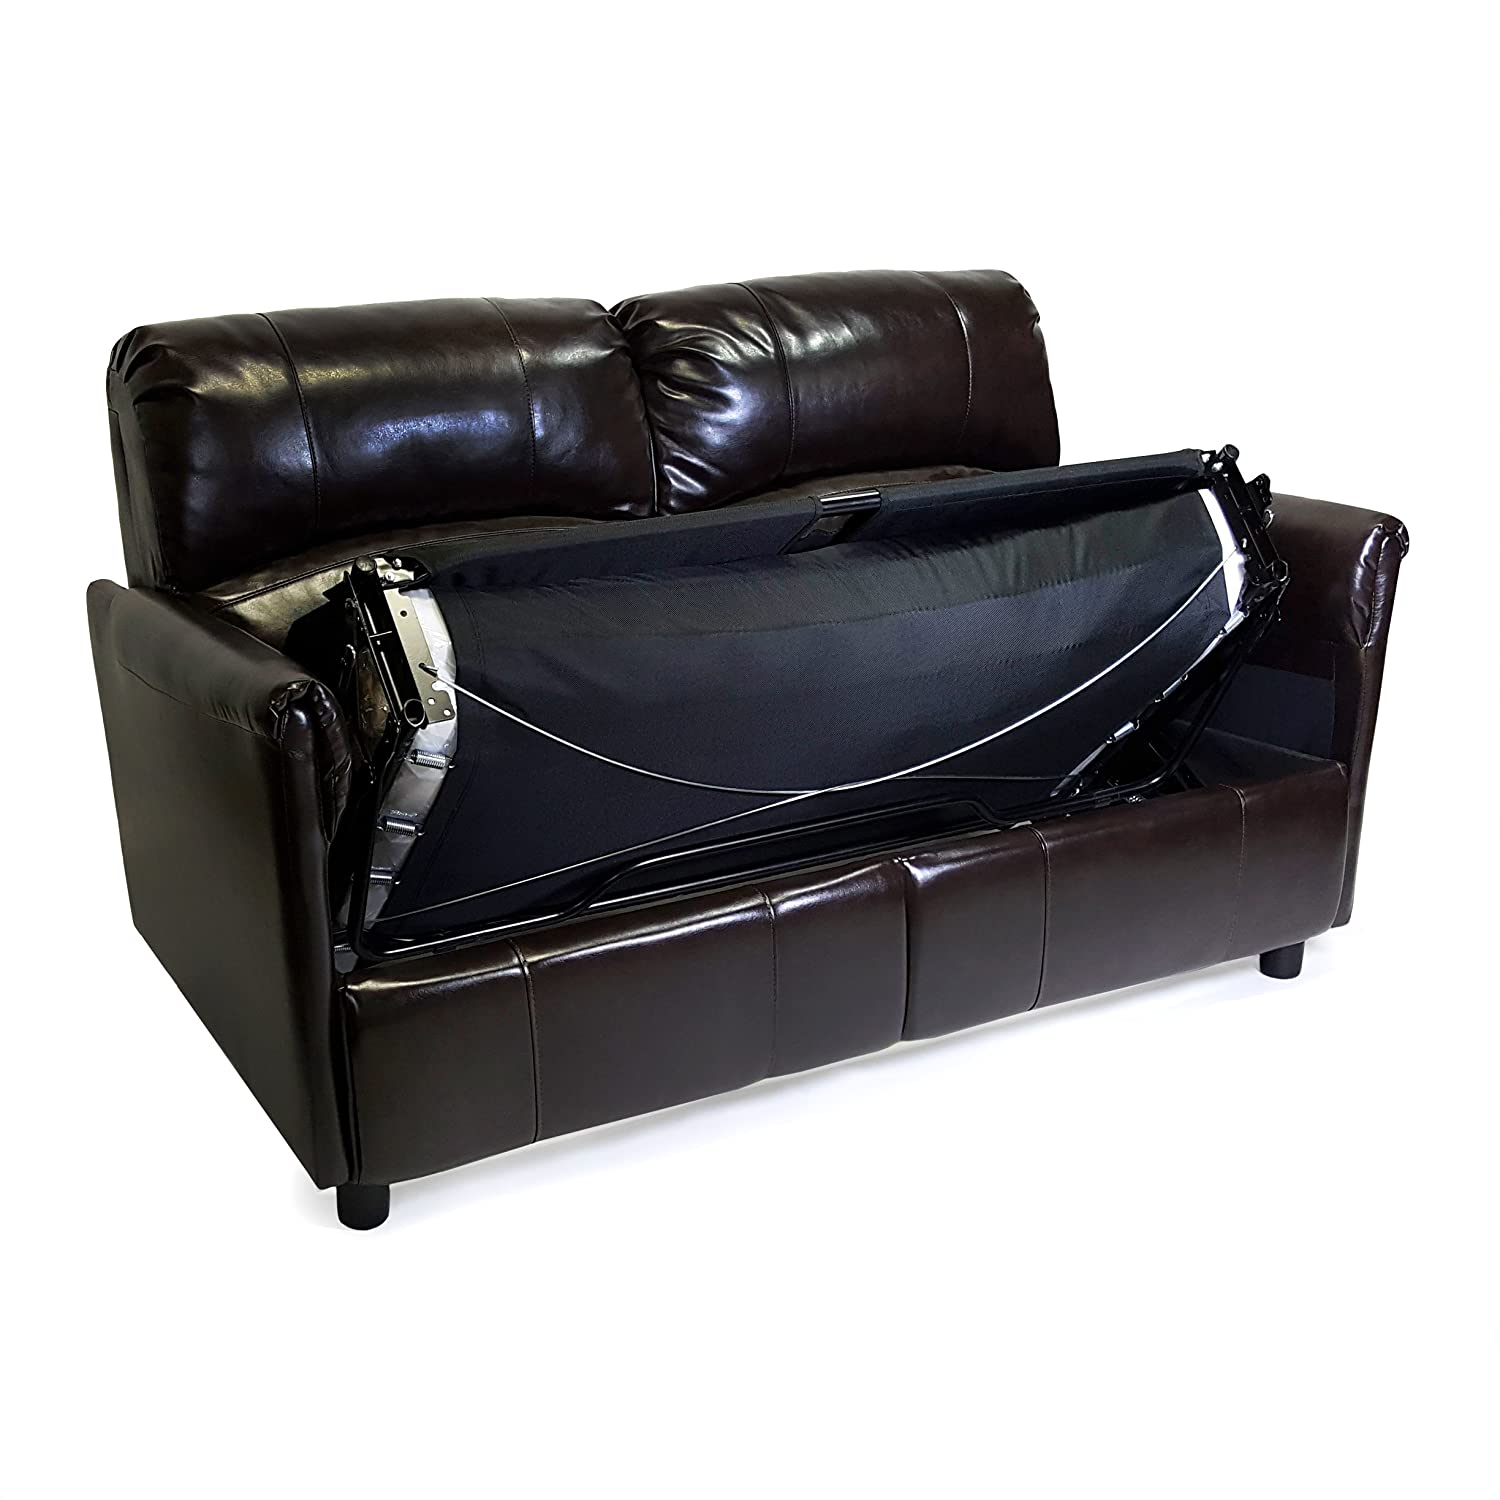 Awesome Jack Knife Sofa Marmsweb Marmsweb